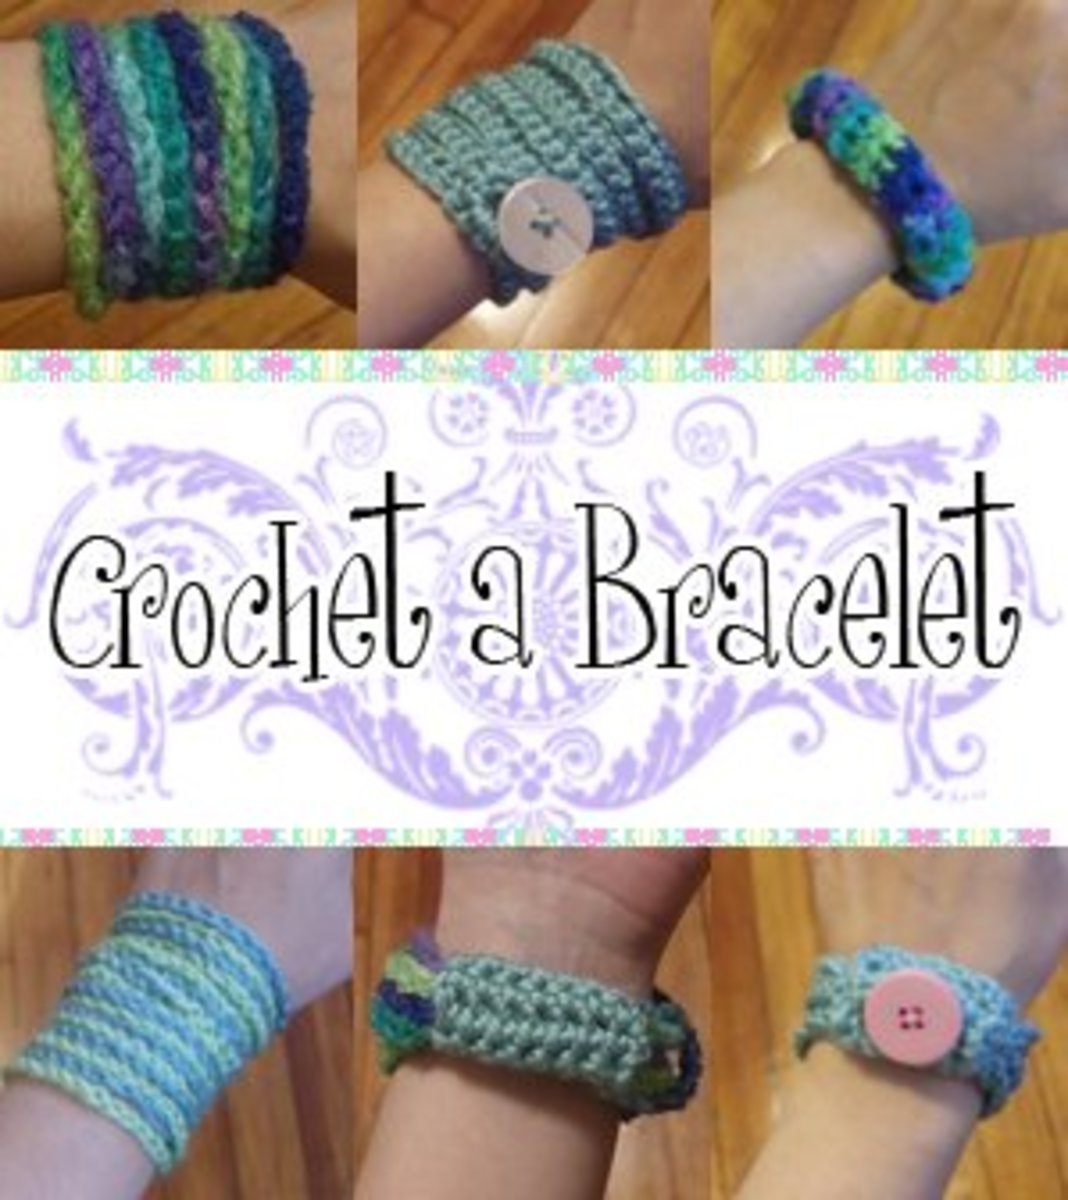 Crochet Bracelet Tutorials